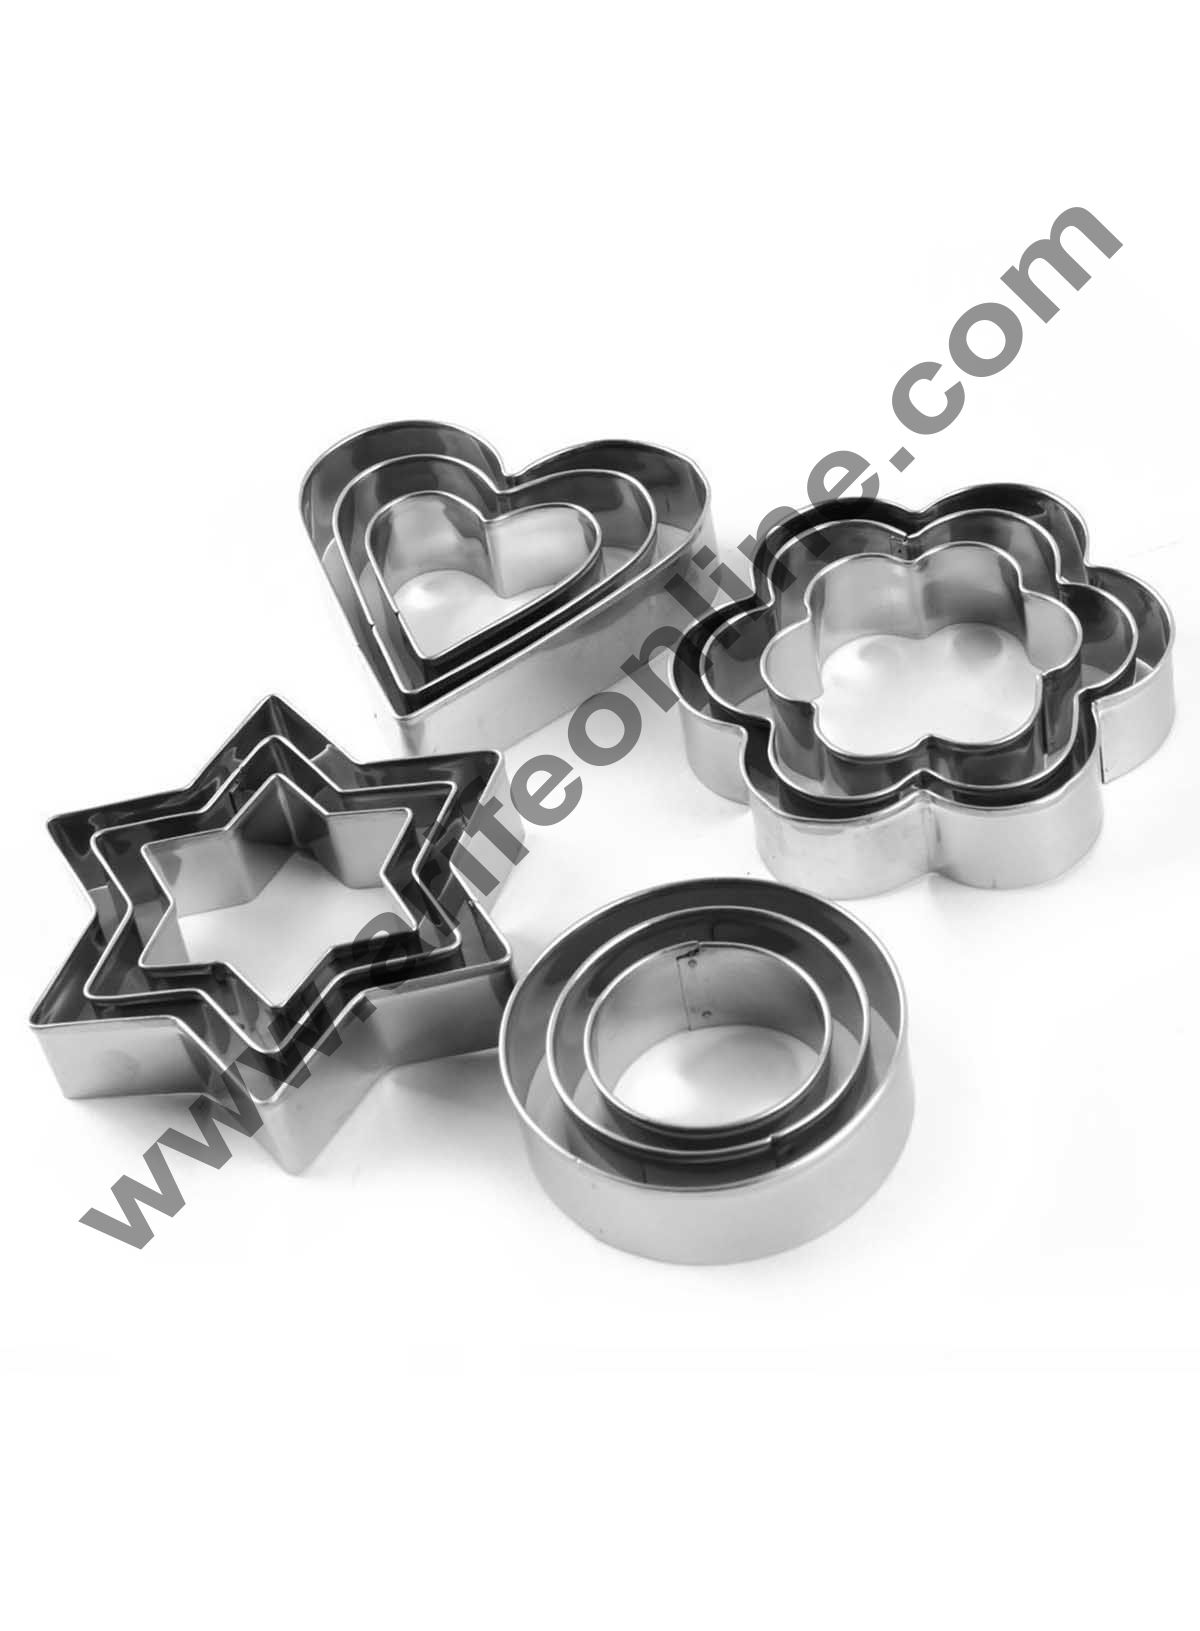 Cake Decor 12Pcs Star,Circle,Heart and Flowers Shape Stainless Steel Cookie Cutter, Cutter Bakeware Mould Biscuit Mould Set Sugar Arts Fondant Cake Decoration Tools